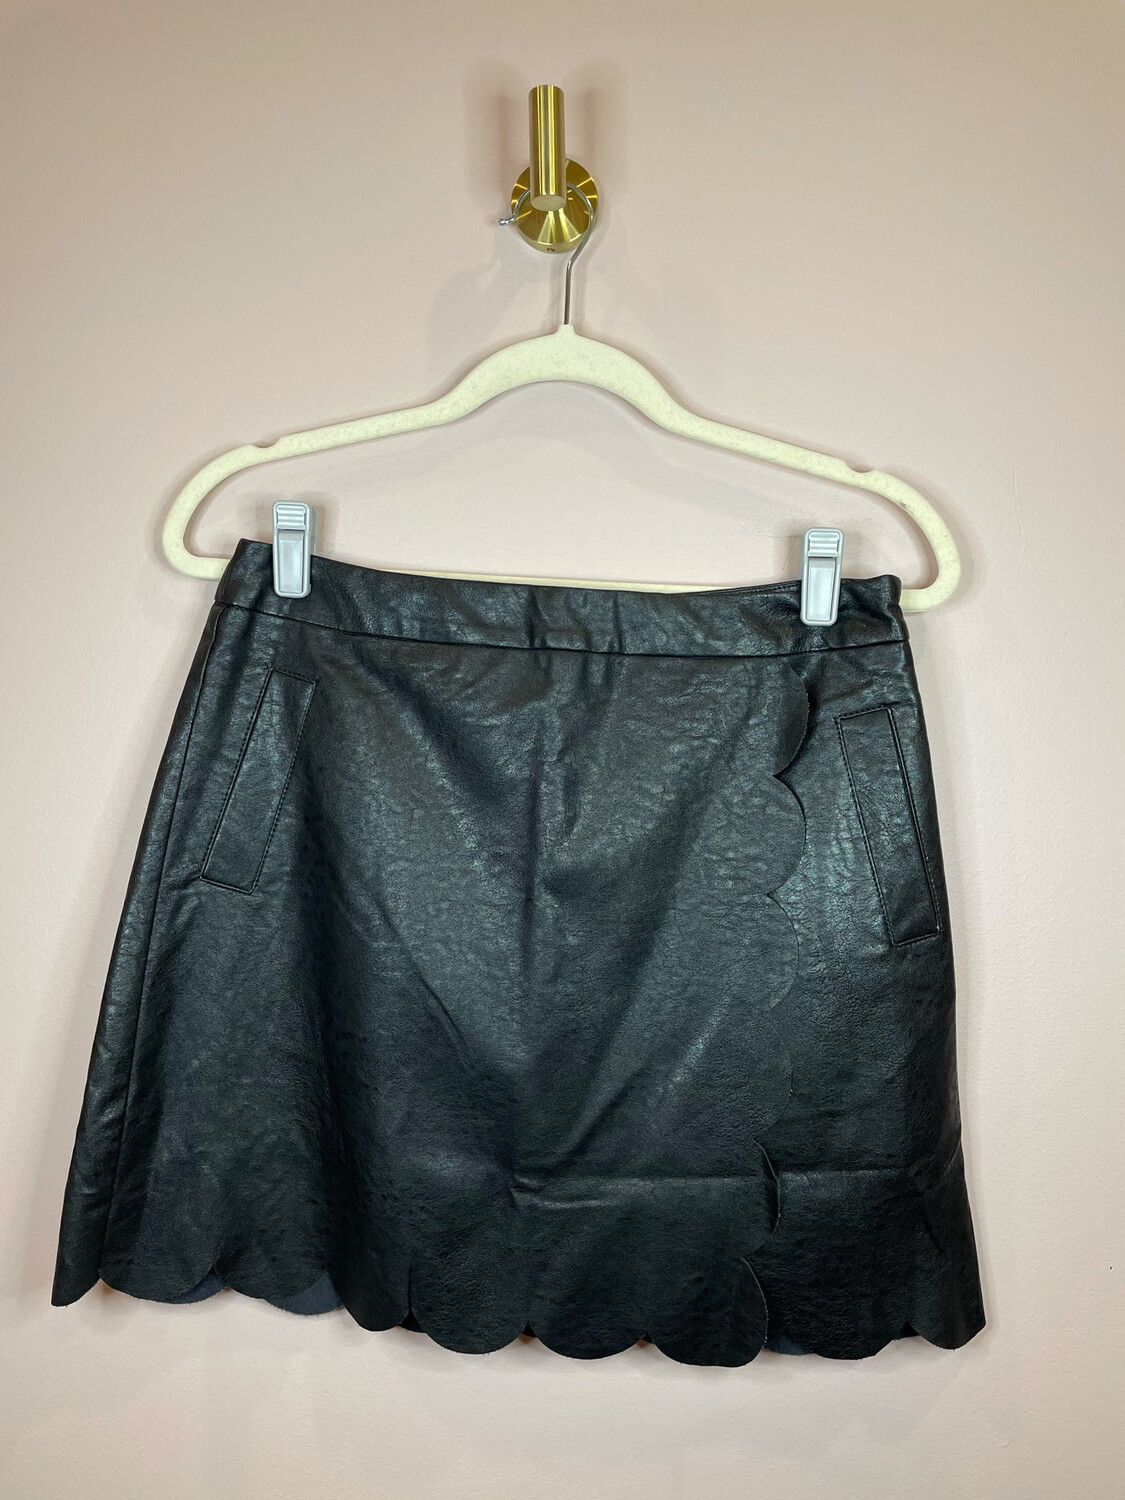 Very J Black Faux Leather Scalloped Layer Skirt - M